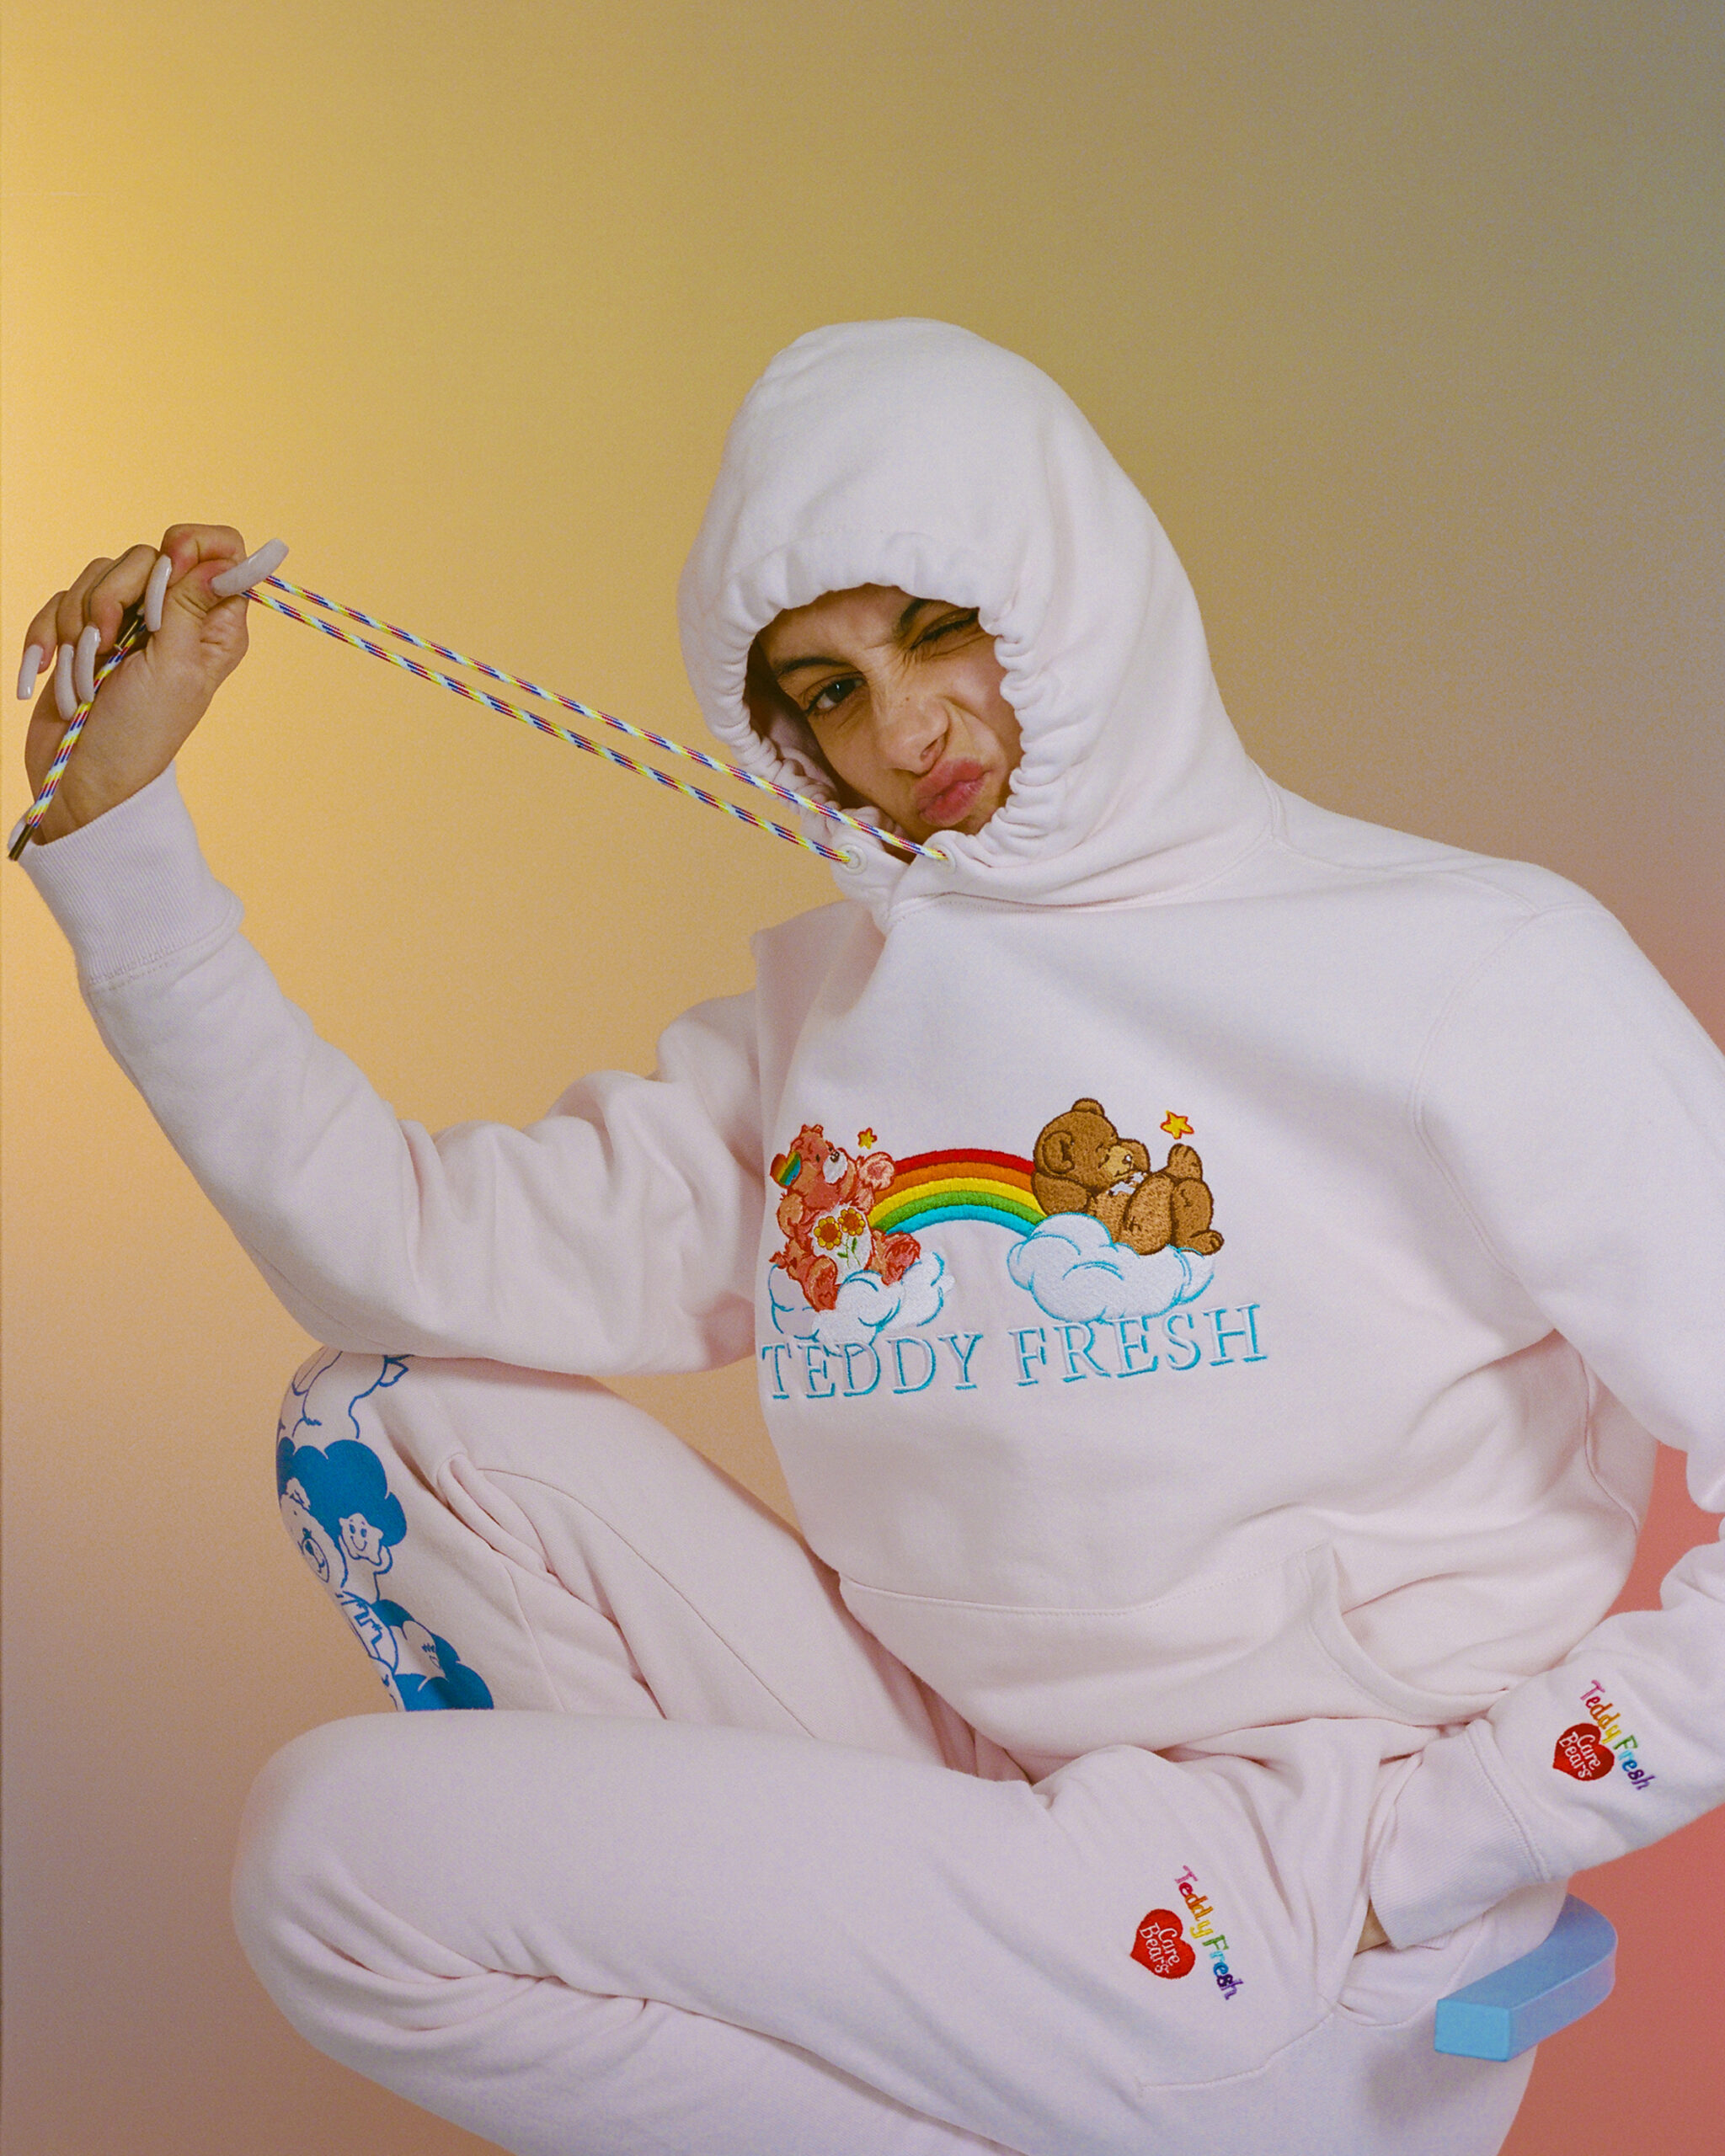 Teddy Fresh x Care Bears